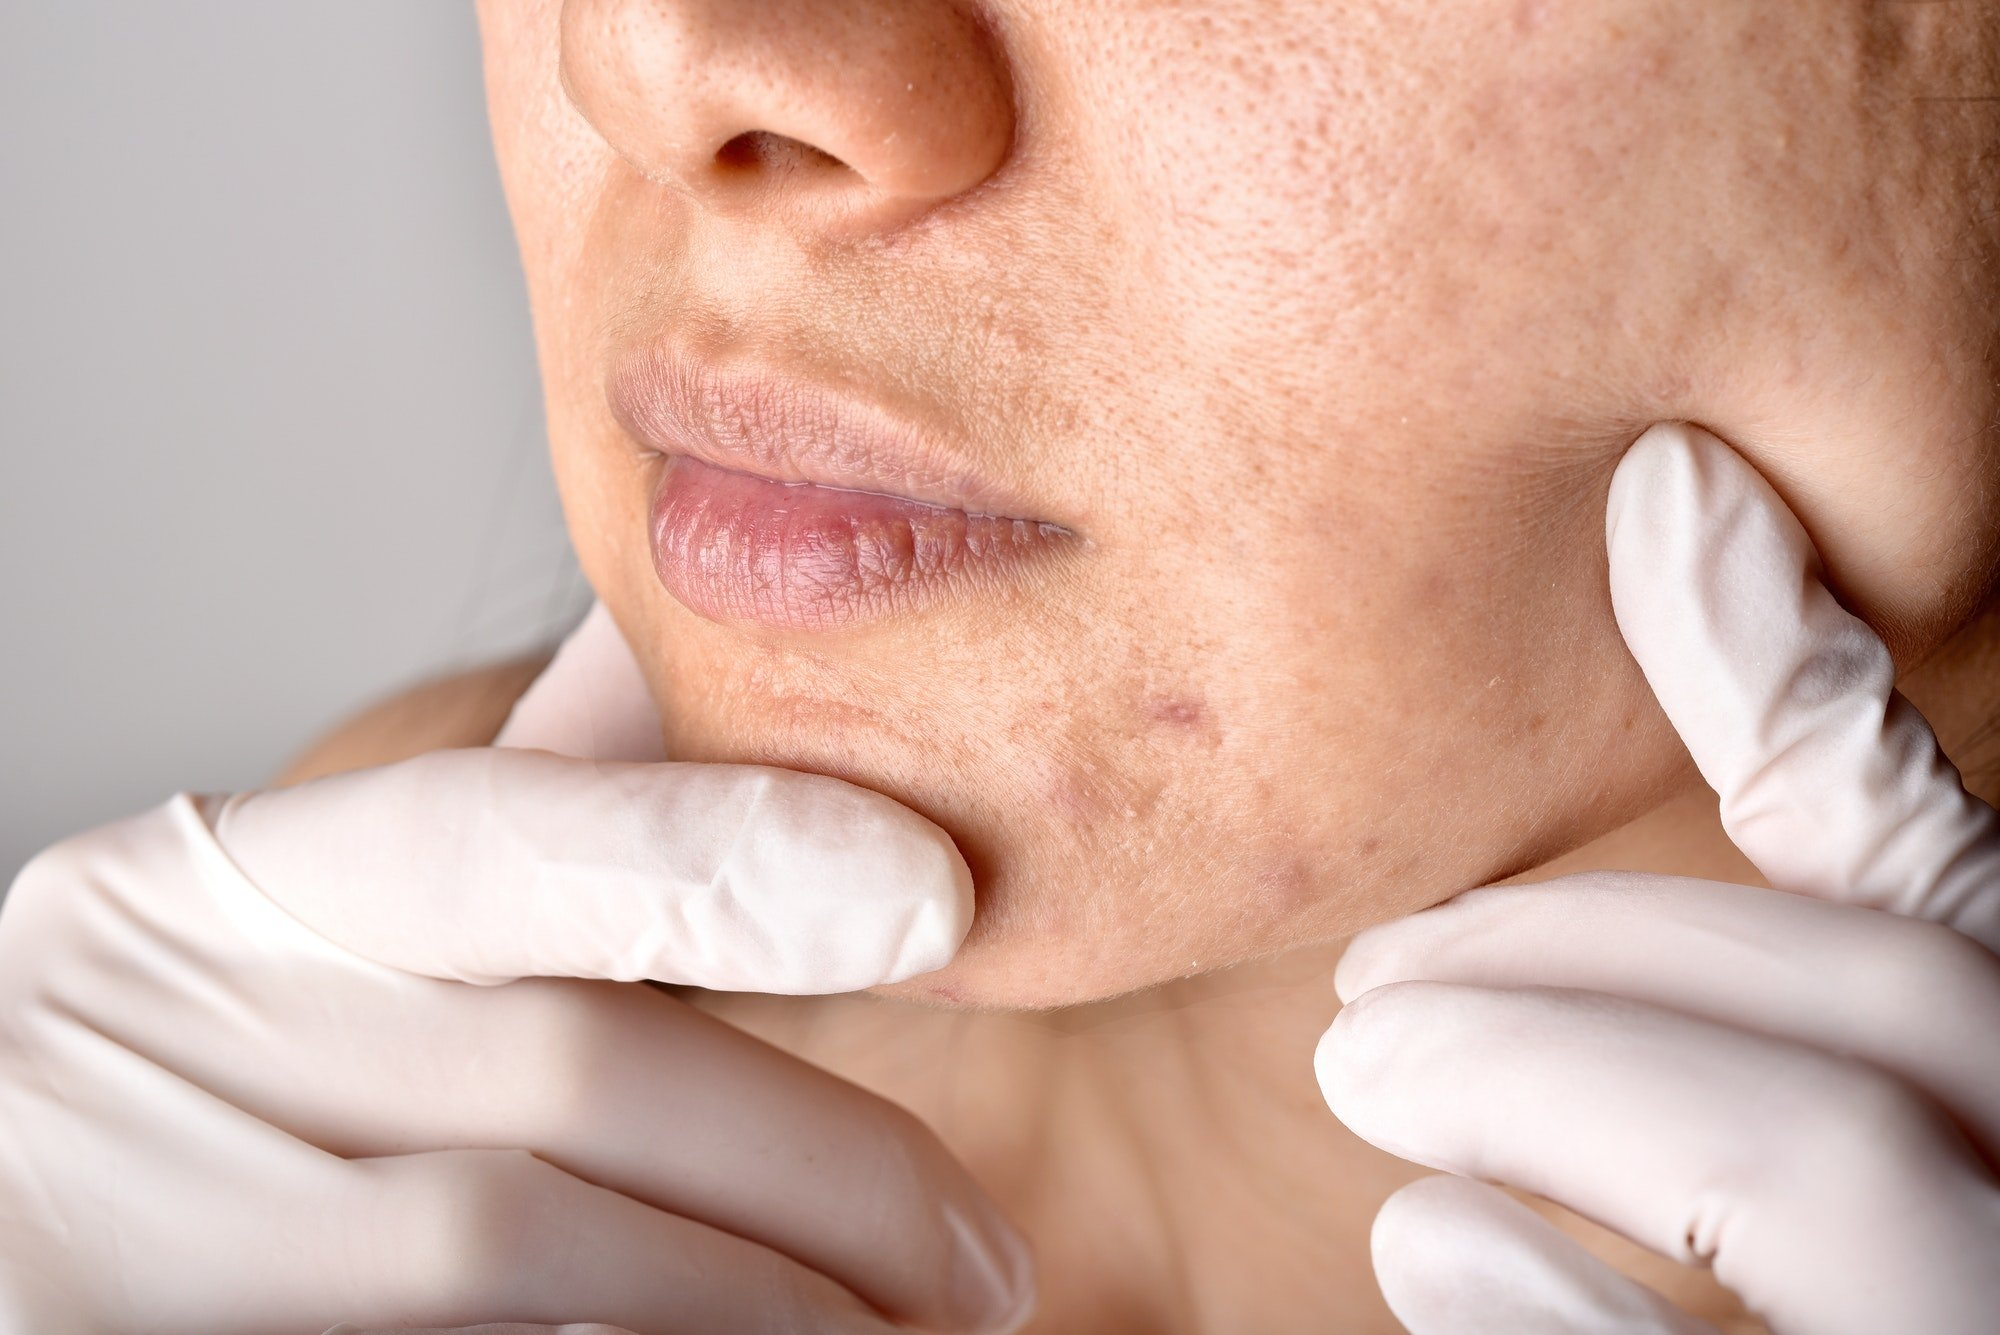 Doctor or Dermatologist hand exam patient face